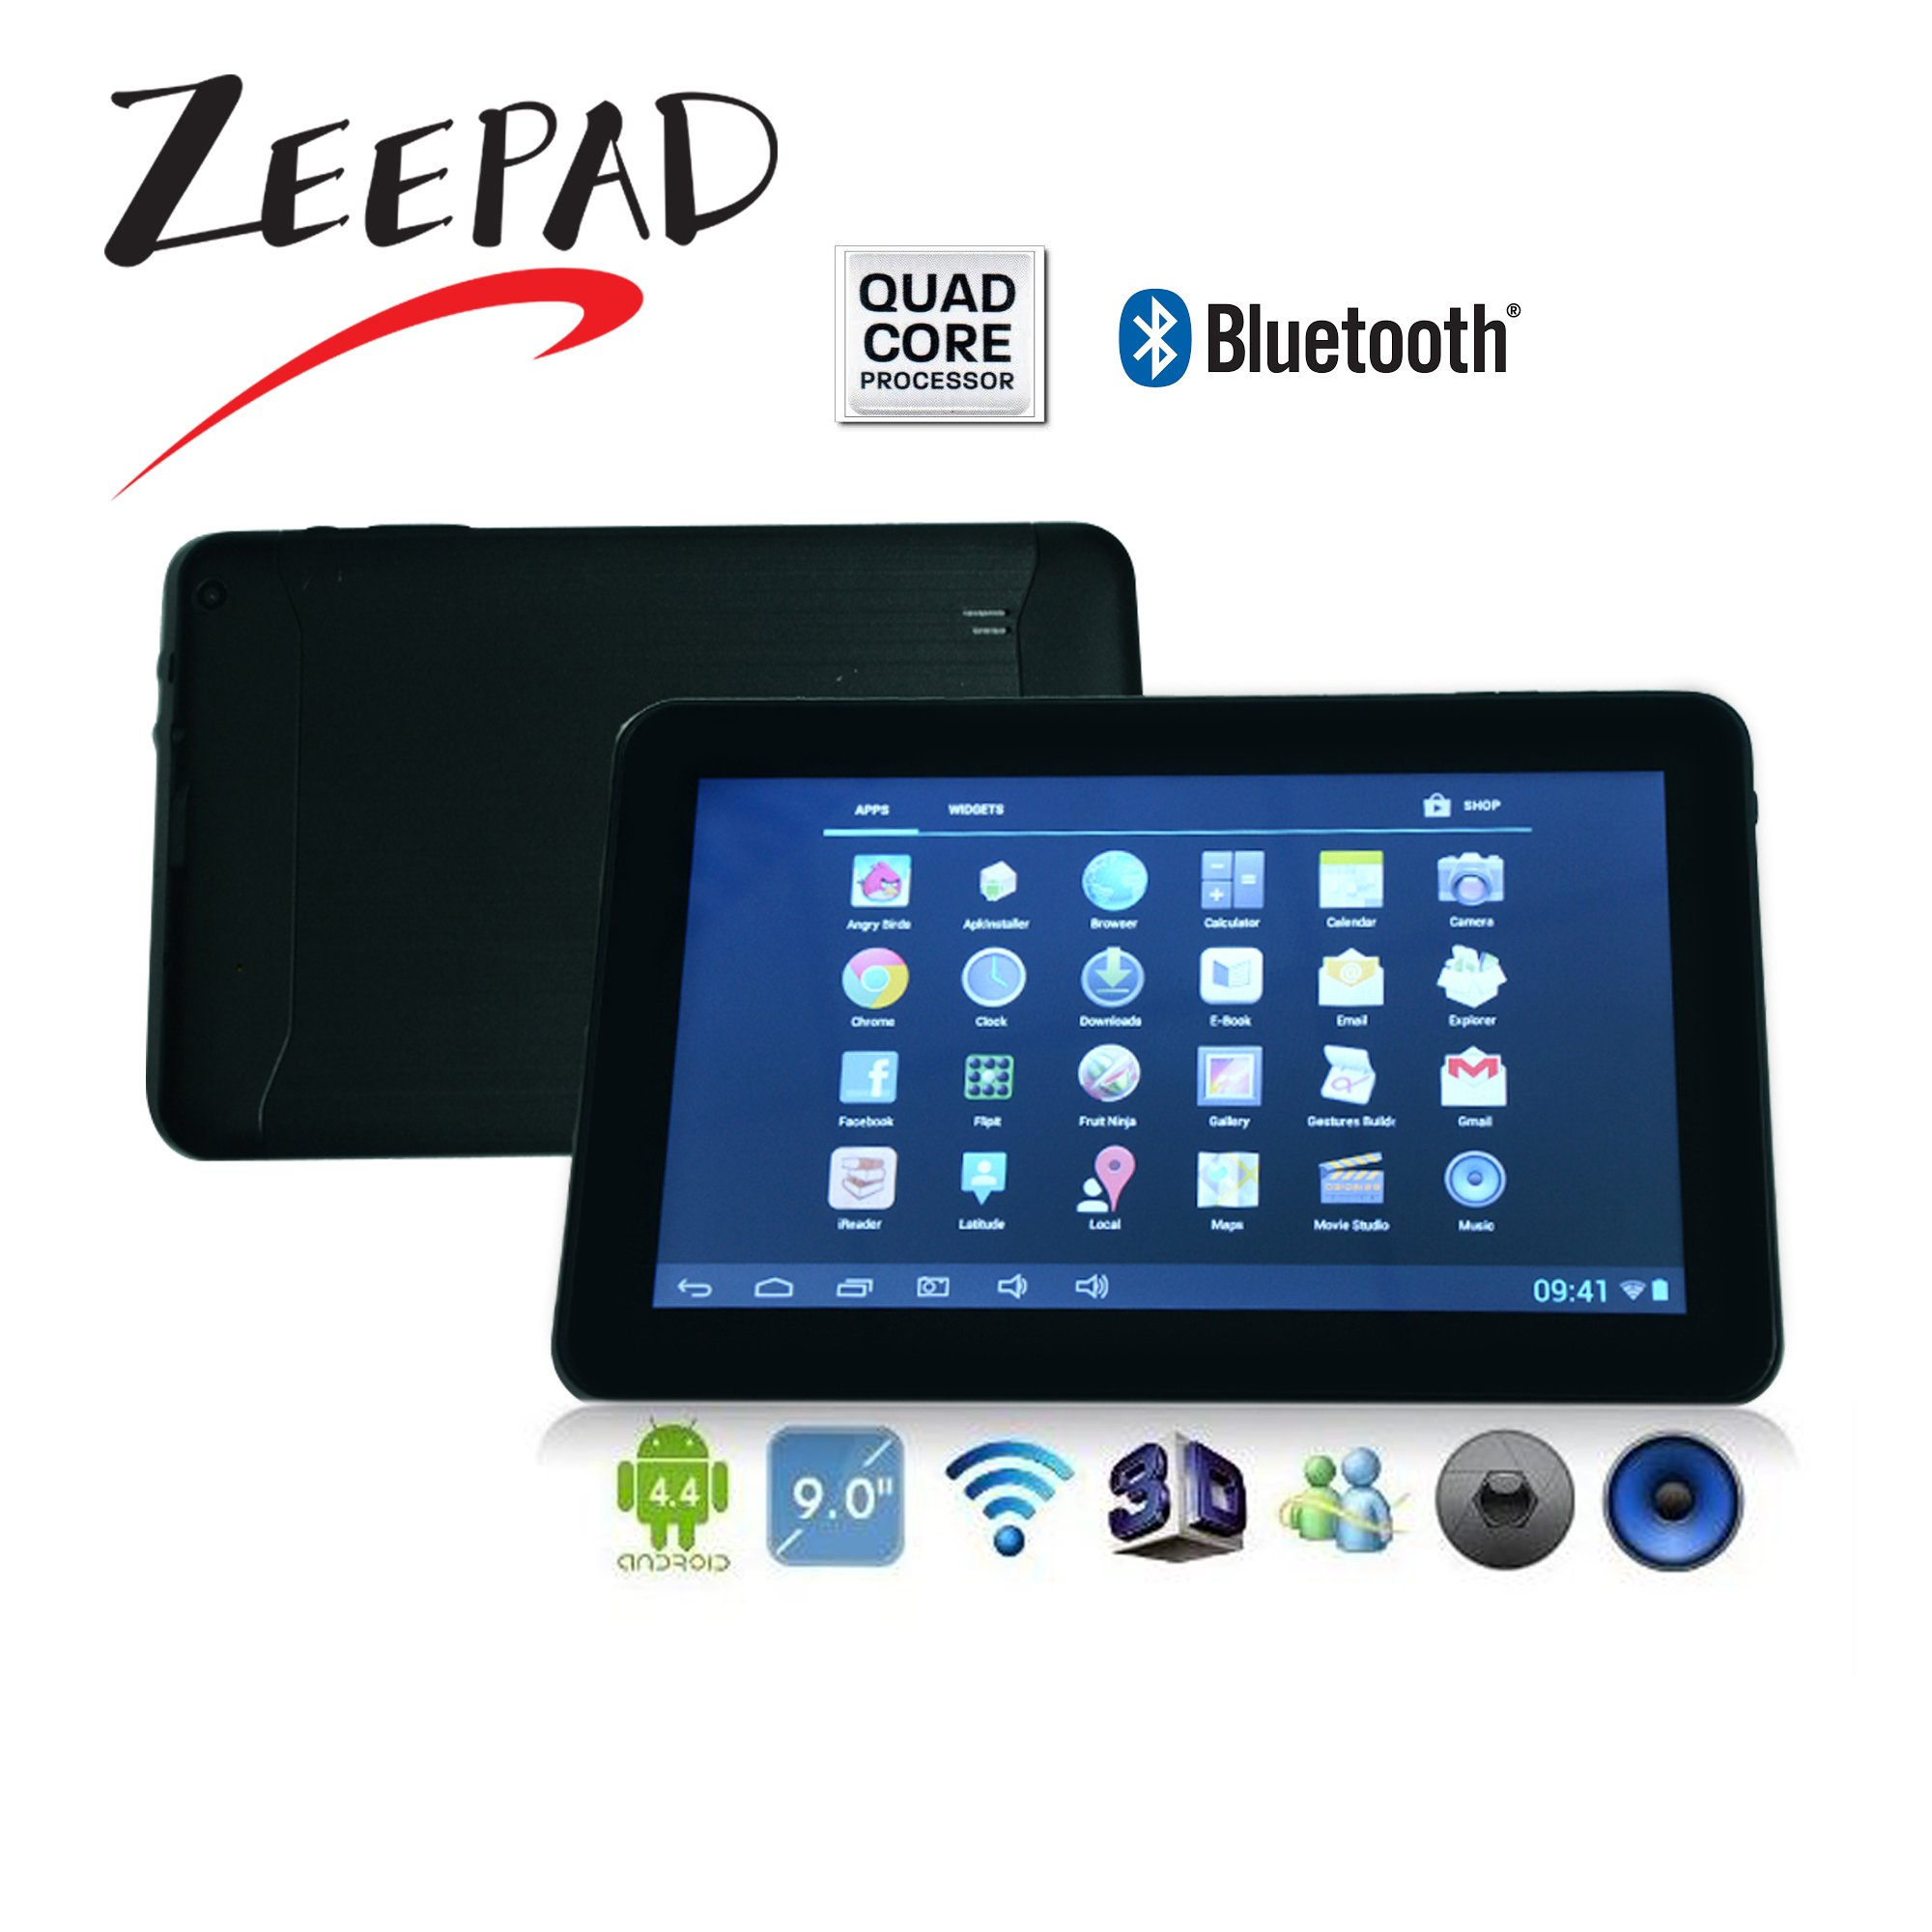 9inch Google Android 4 4 Quad Core Allwinner A33 Multi-Touch Screen 8GB  Bluetooth, WiFi, Dual Camera Tablet PC-Black